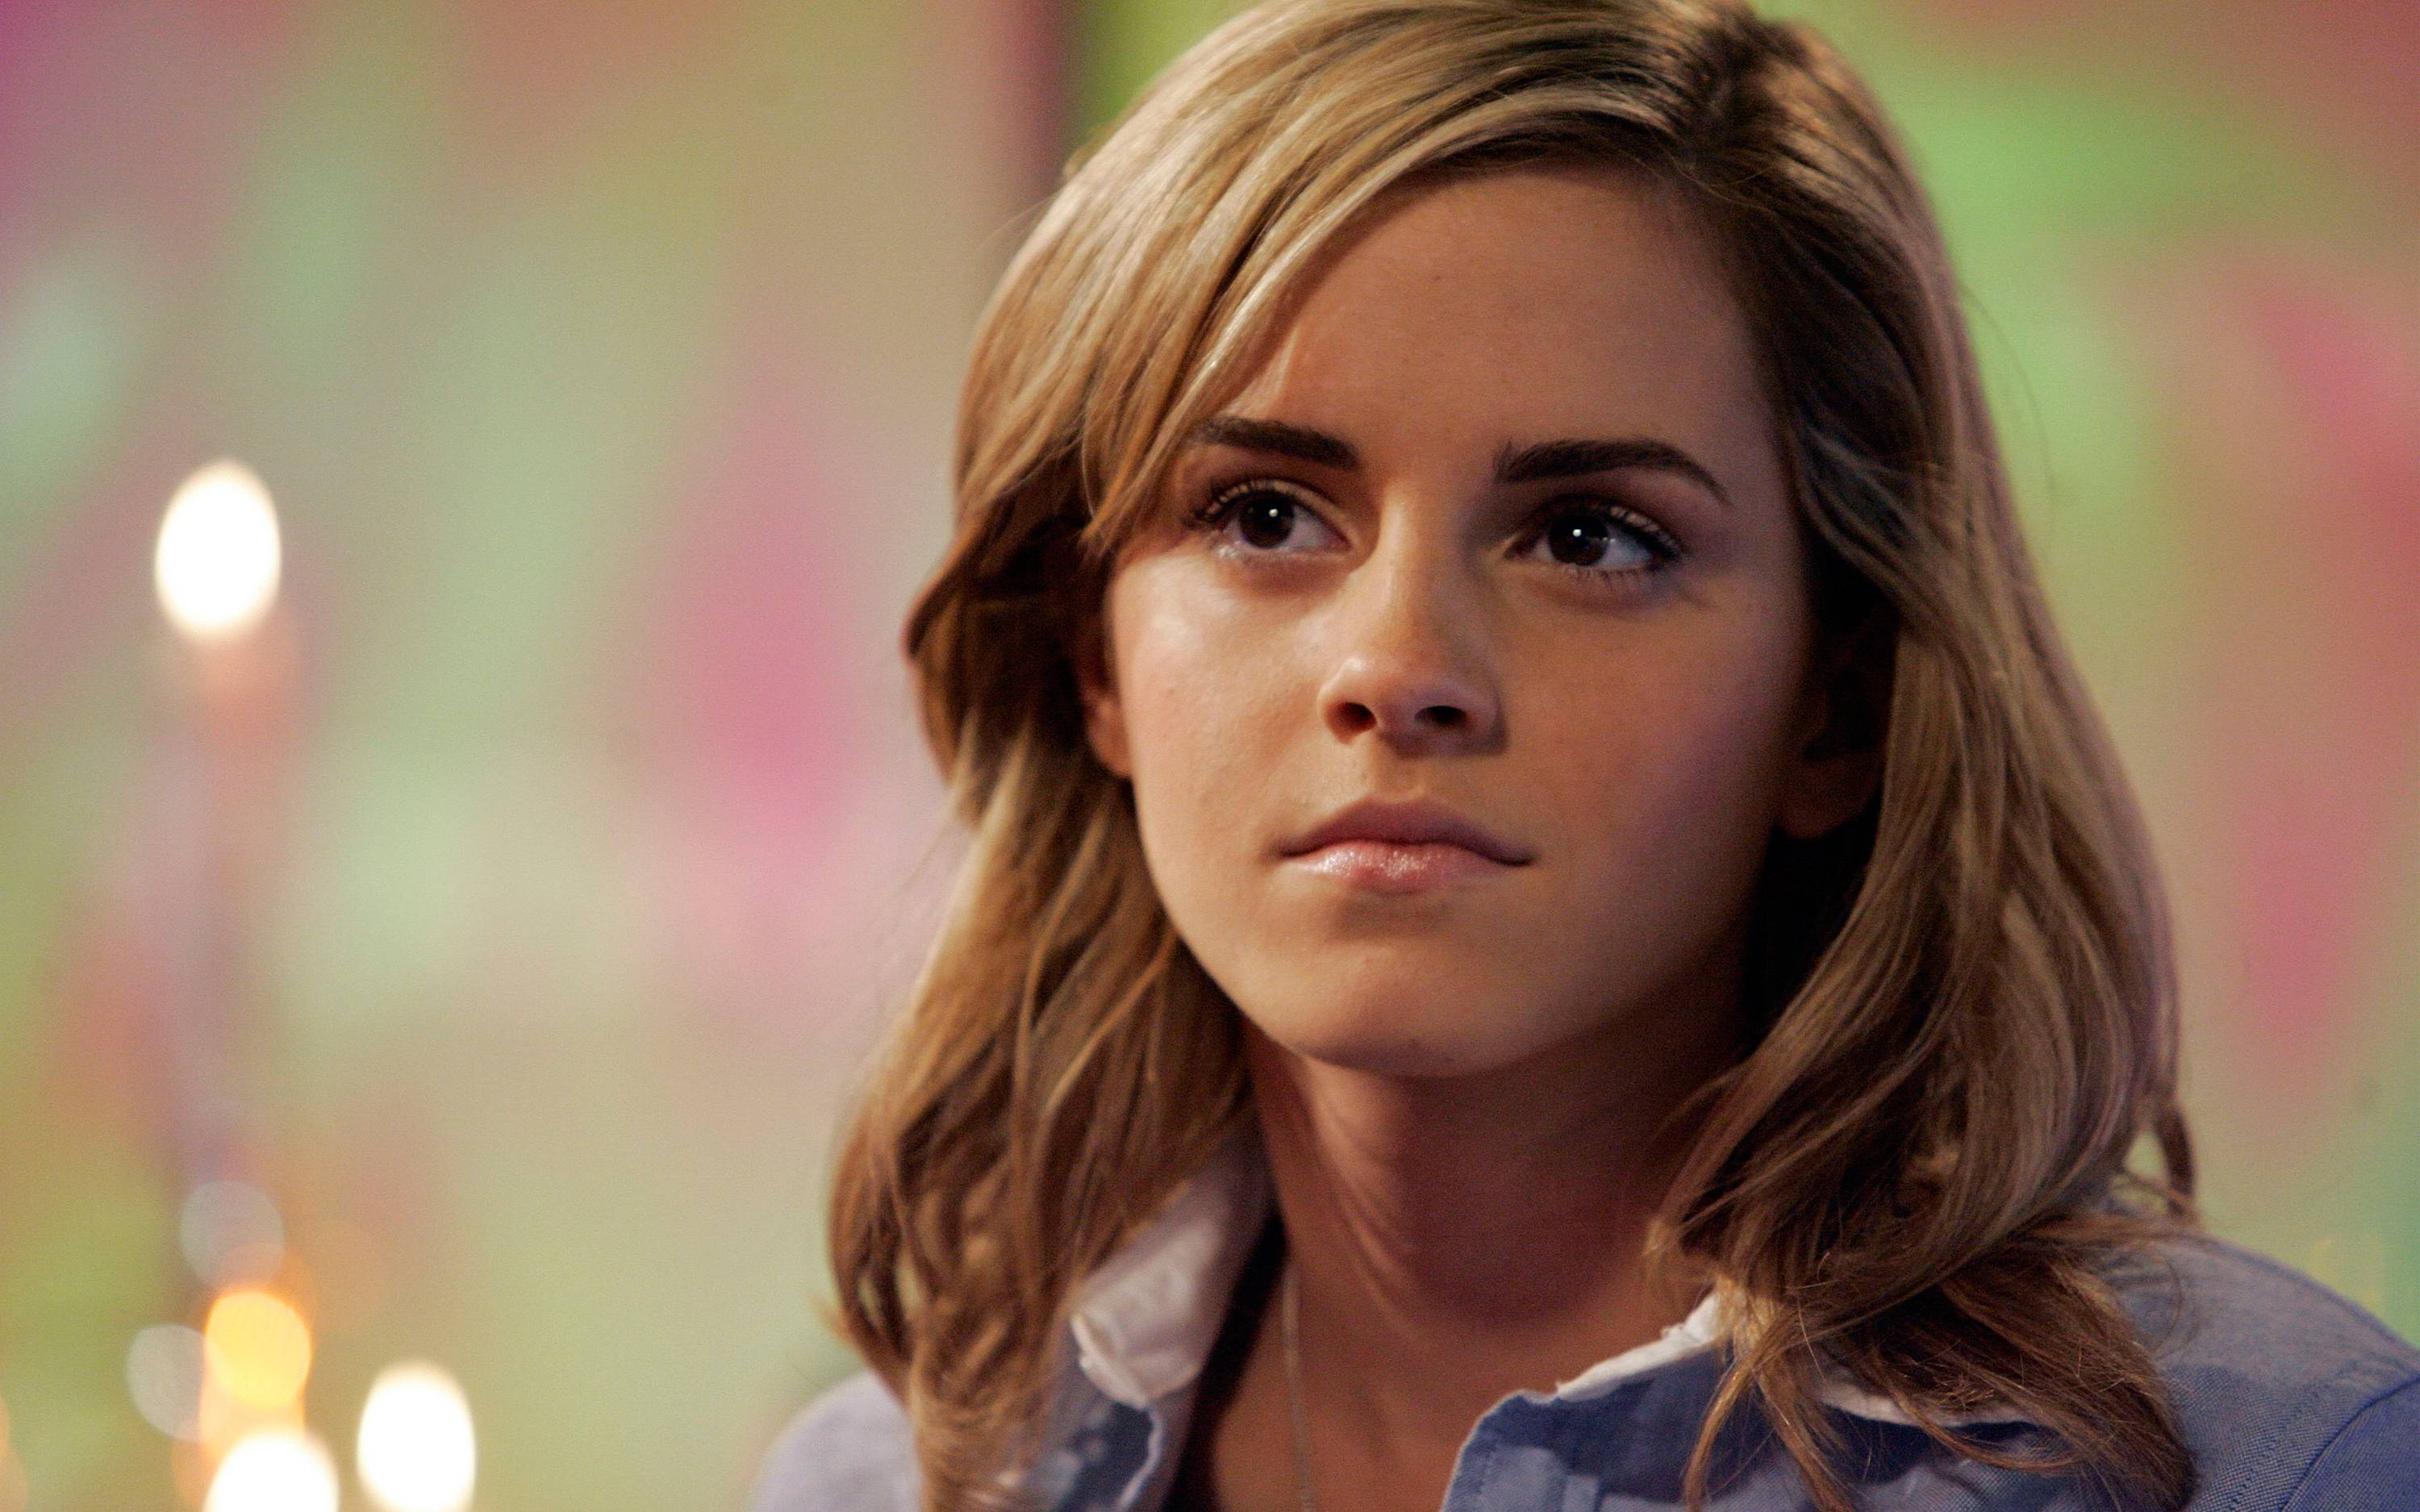 Emma Watson Wallpapers | Celebrities HD Wallpapers - Page 2